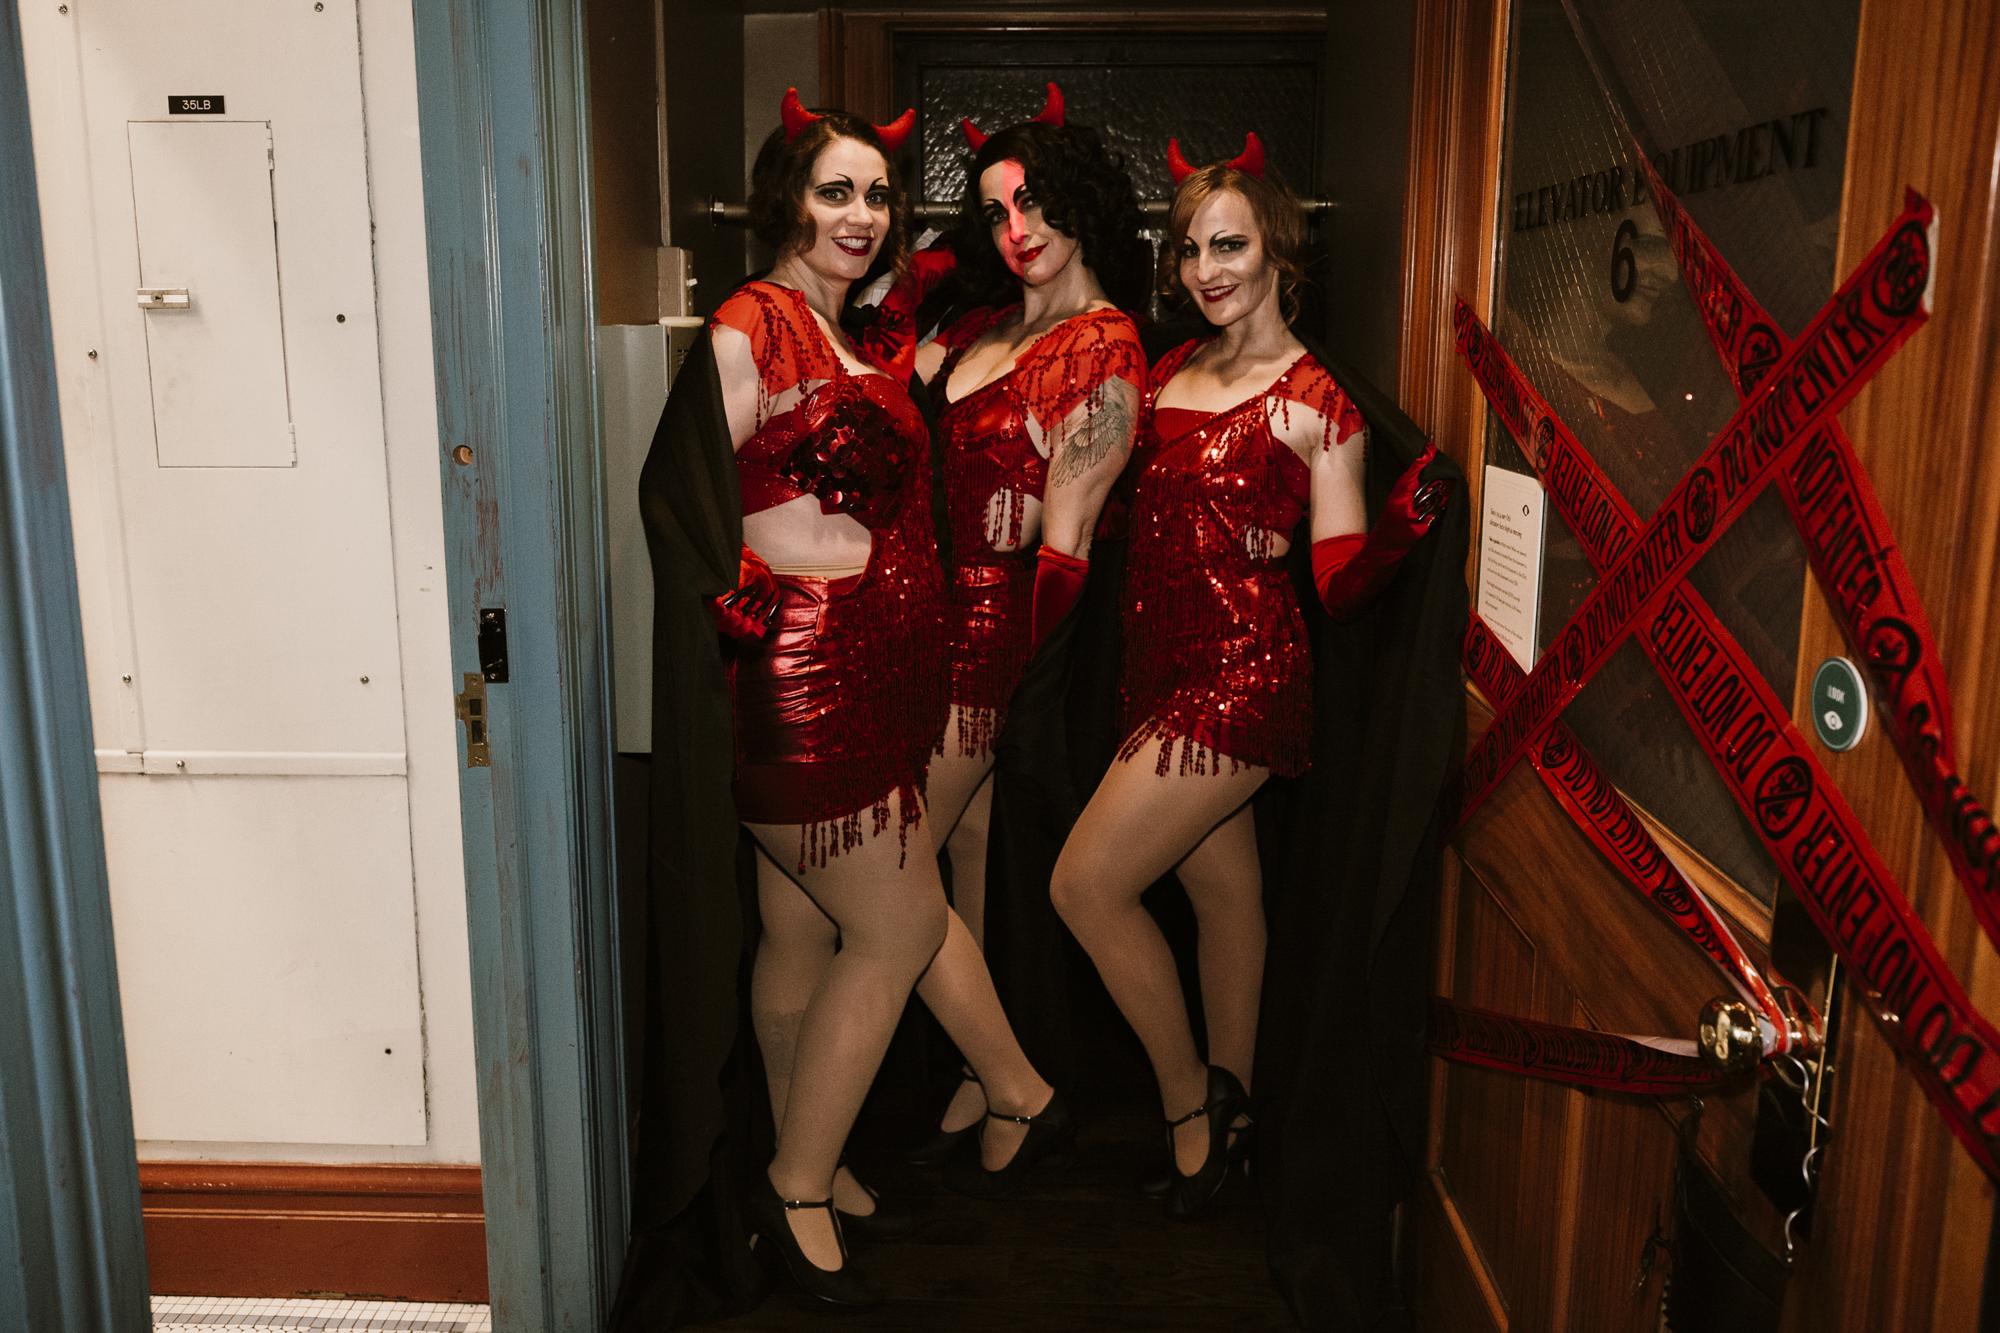 <p>It's the [zom] bees knees! For three nights only, Seattle's iconic Smith Tower transformed into a spooky speakeasy complete with dance parties, zombie flappers,{&amp;nbsp;}séances and scary sangria. More info at visit.smithtower.com! (Image: Sunita Martini / Seattle Refined)</p>